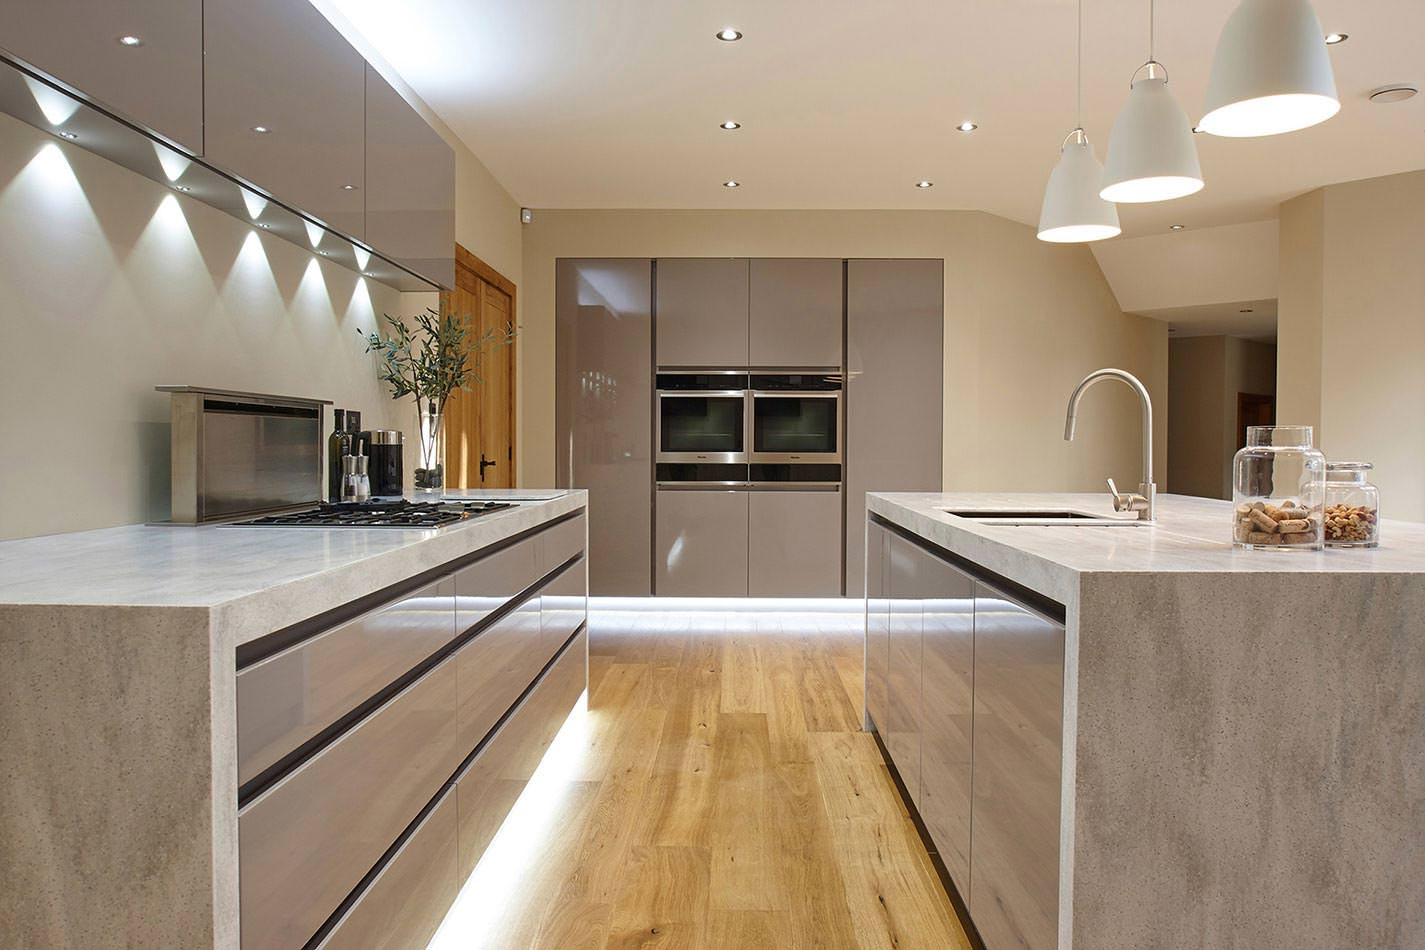 Modern kitchen featuring an island and a counter with the same waterfall-style countertop and are both set on the home's hardwood flooring.